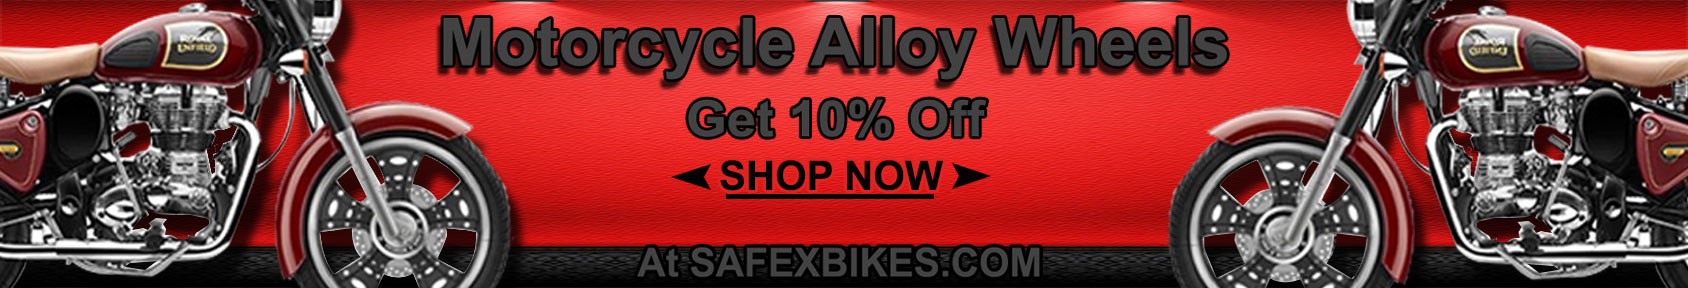 Special offers on Genuine Motorcycle Spare Parts And Accessories - Get alloy wheel at 10percent discount